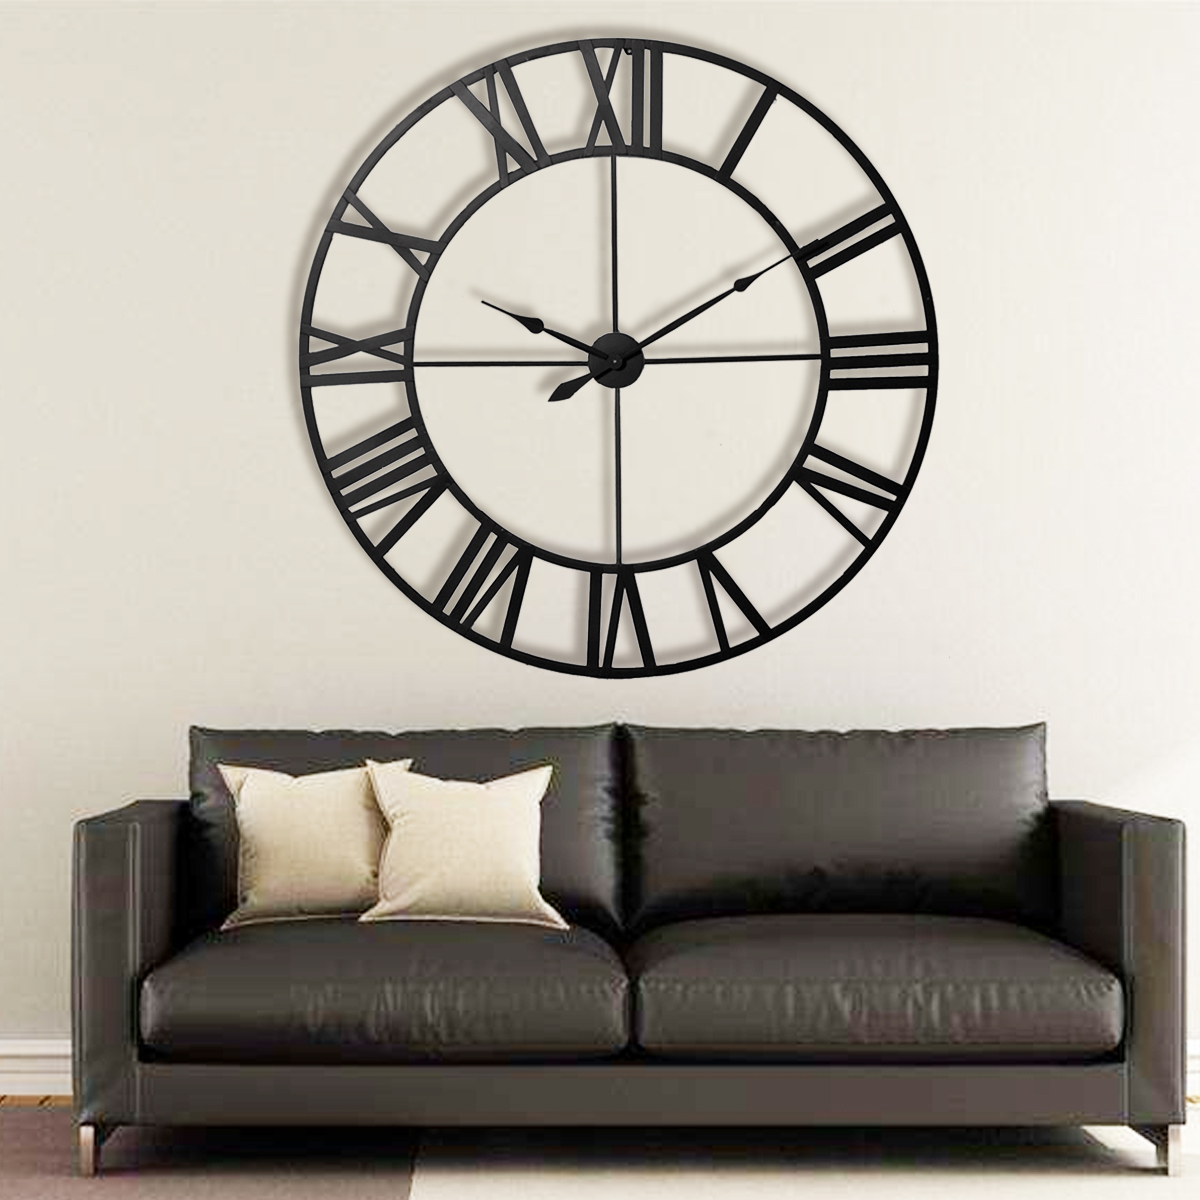 Sofa Bed Giant Malaysia 80cm Large Outdoor Garden Wall Clock Roman Numerals Giant Open Face Metal